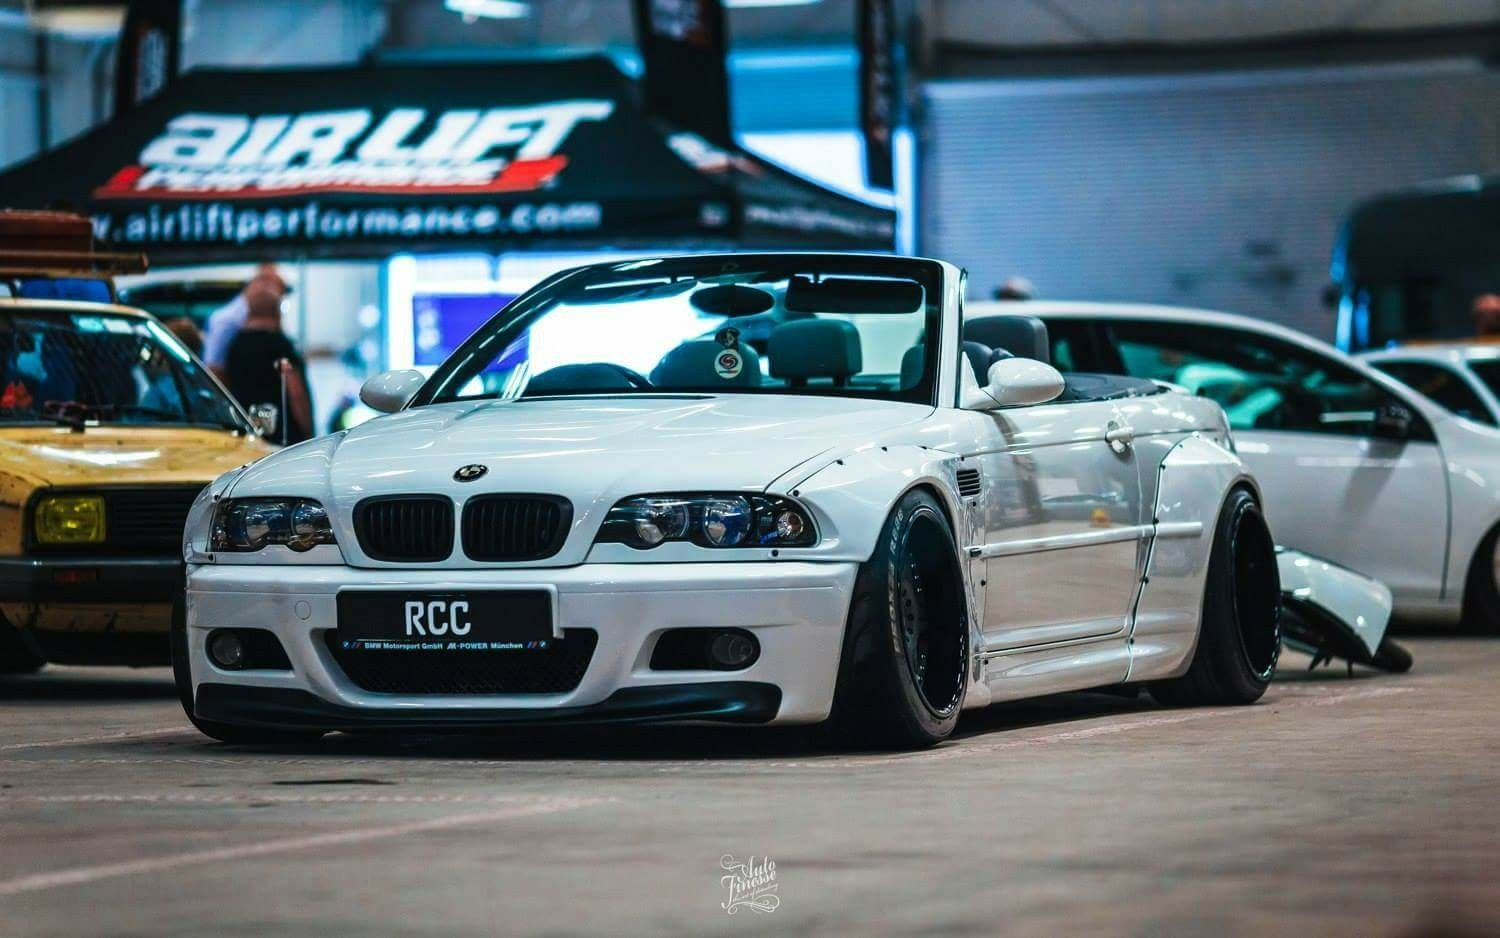 Bmw E46 M3 White Cabrio Widebody Bmw E46 Bmw Bmw Cars